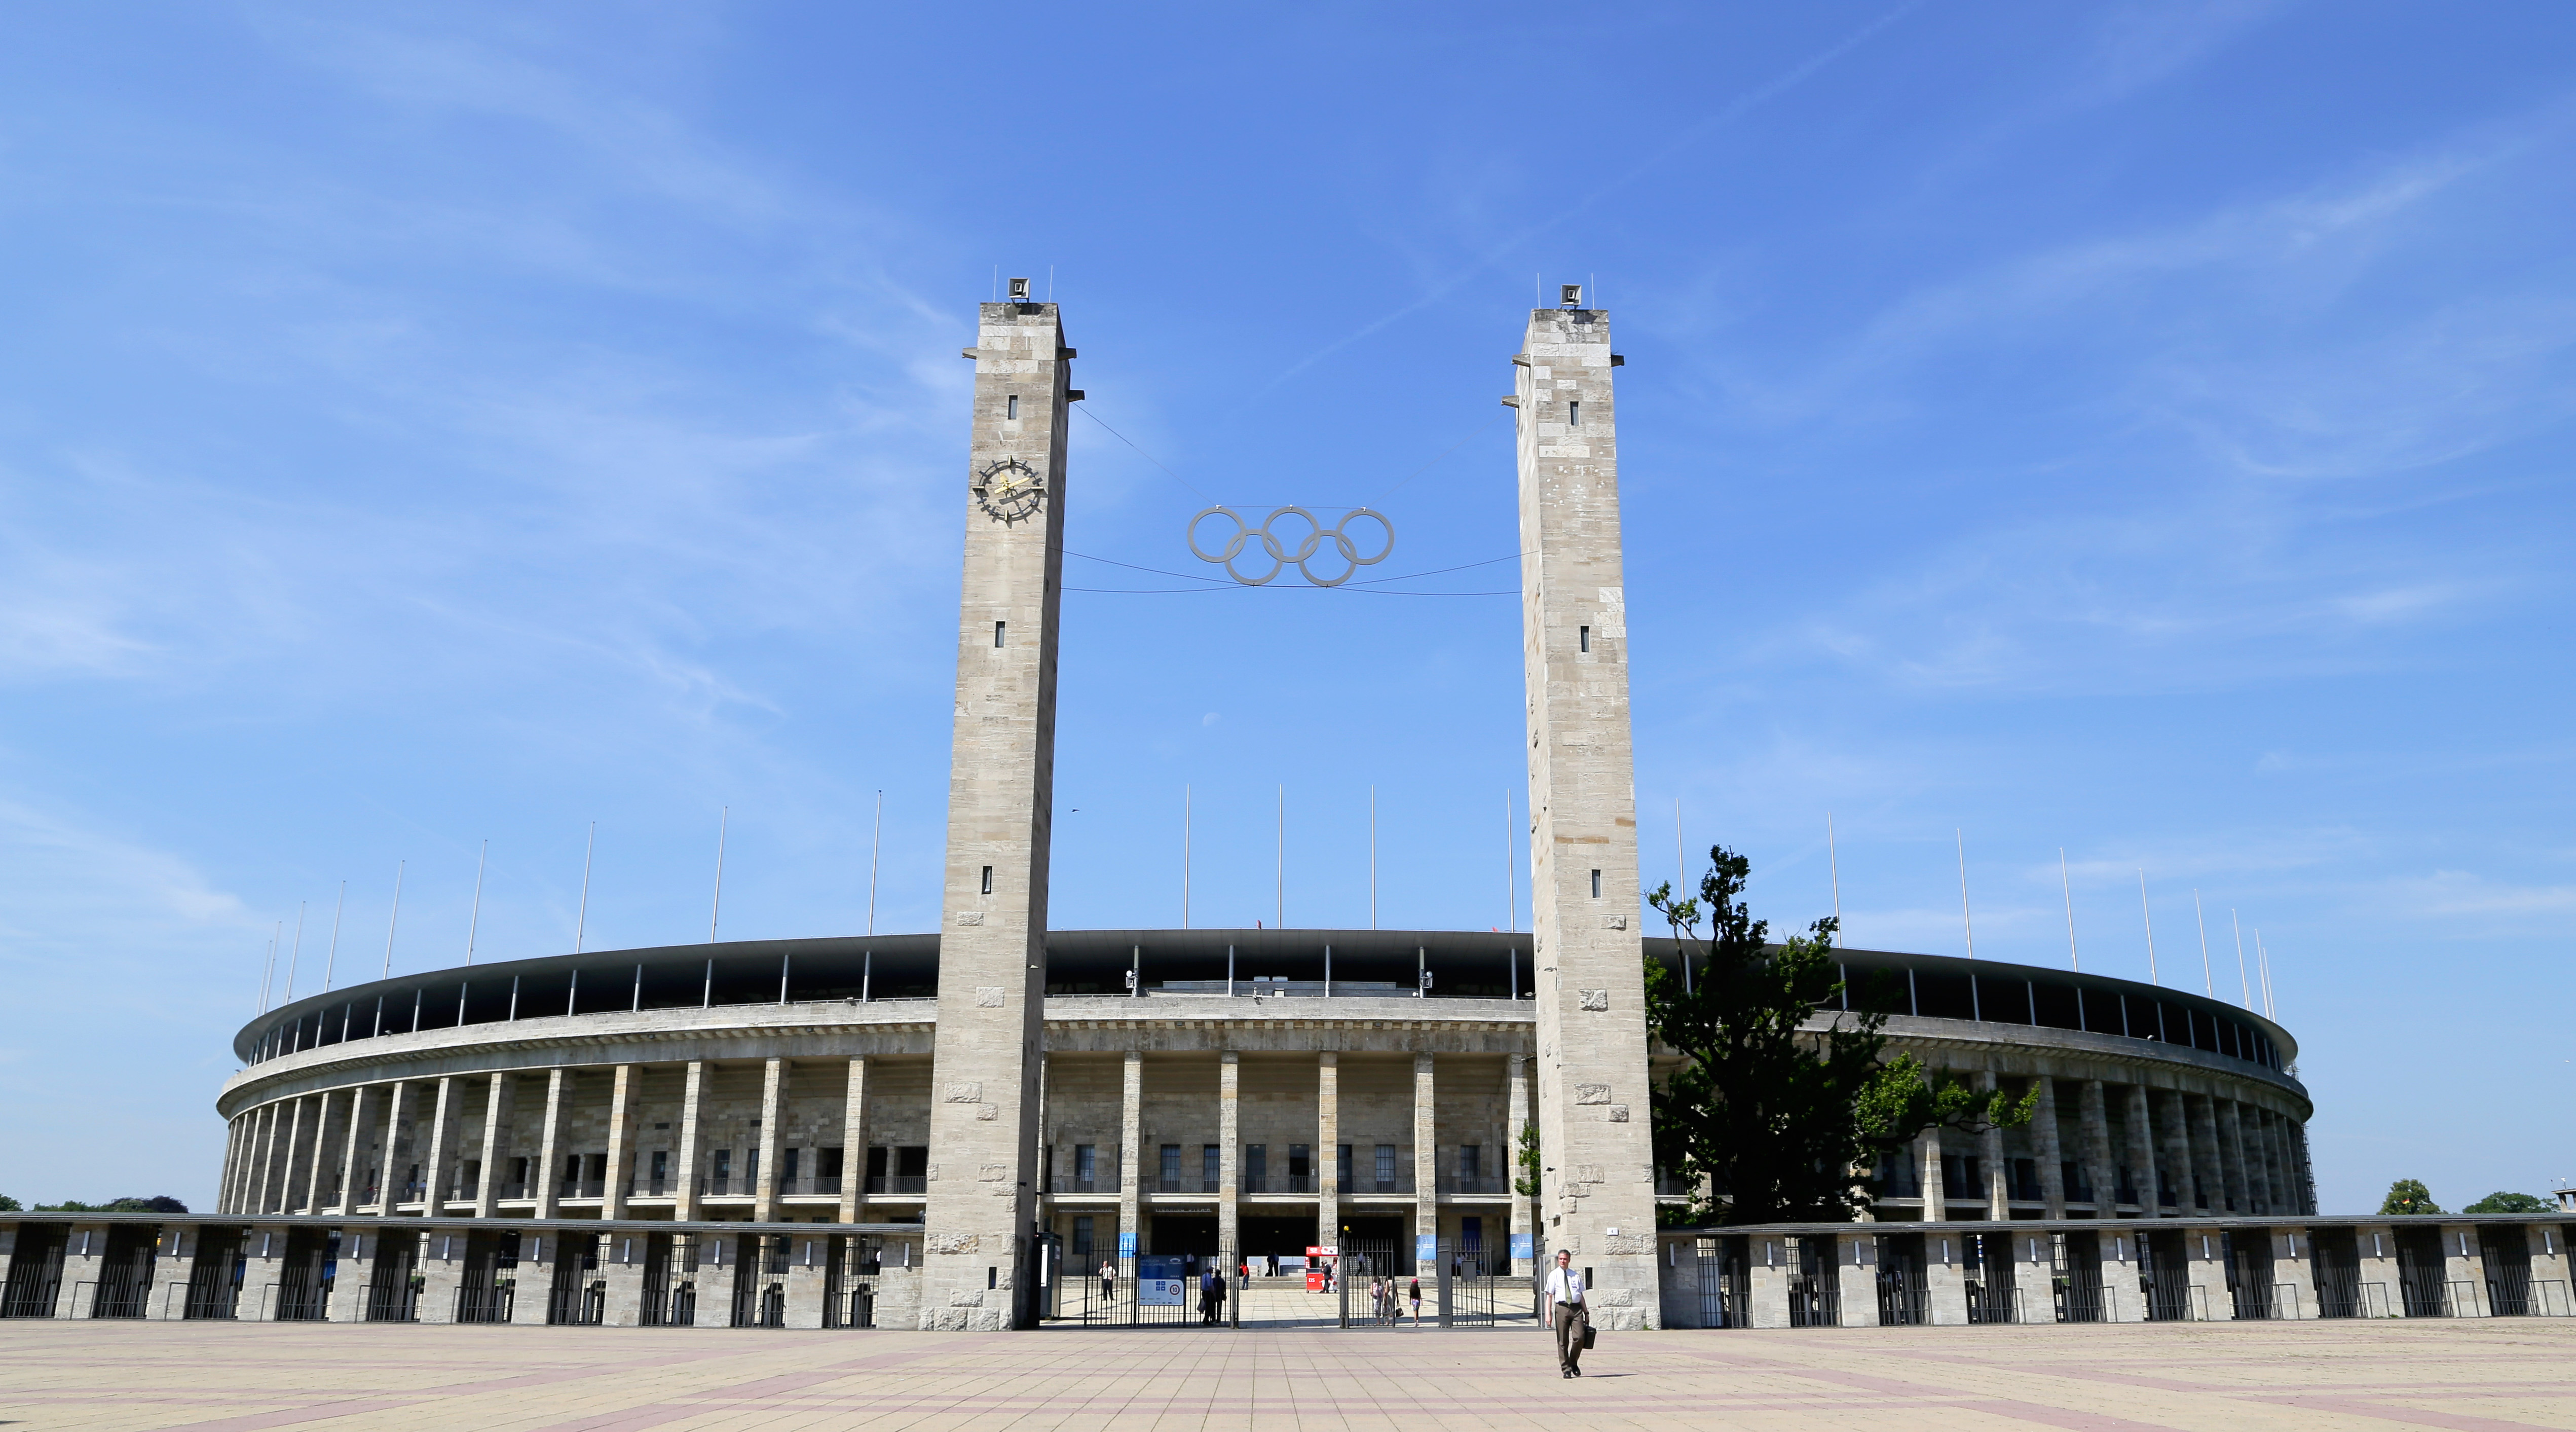 The Olympiastadion (Olympic Stadium) on July 18, 2014 in Berlin, Germany. The current Olympiastadion was originally built for the 1936 Summer Olympics in the southern part of the Olympiapark Berlin.